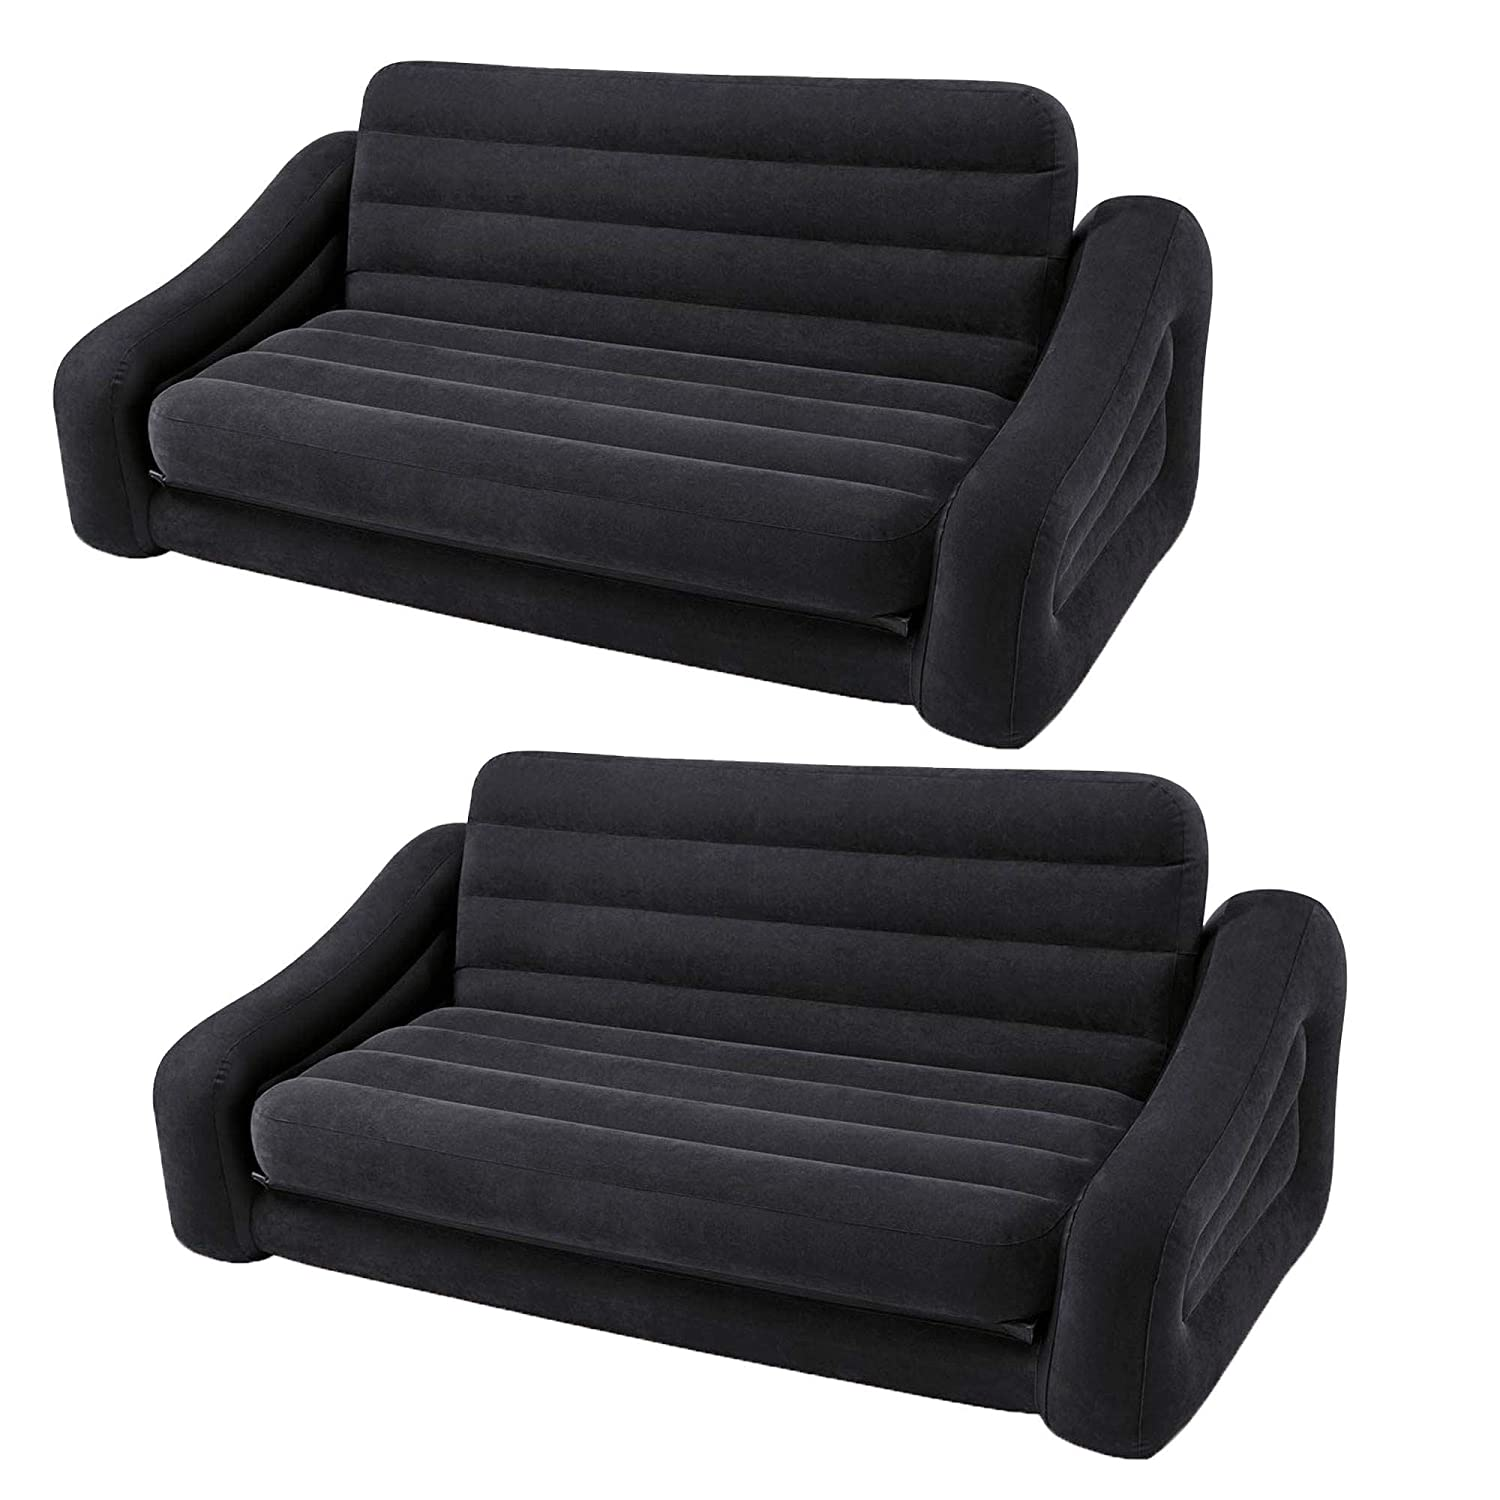 Admirable Intex Inflatable Queen Size Pull Out Futon Sofa Couch Bed Ibusinesslaw Wood Chair Design Ideas Ibusinesslaworg